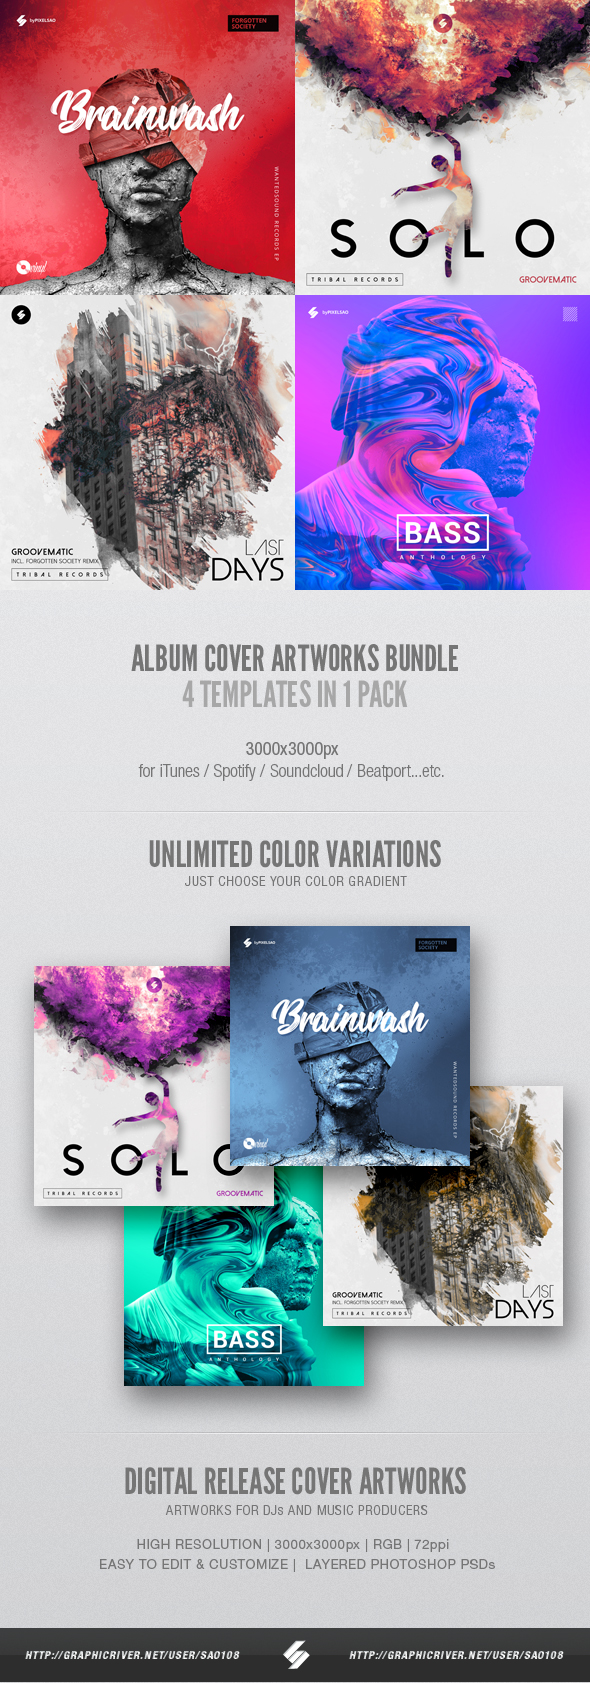 alternative album cover graphic templates bundle